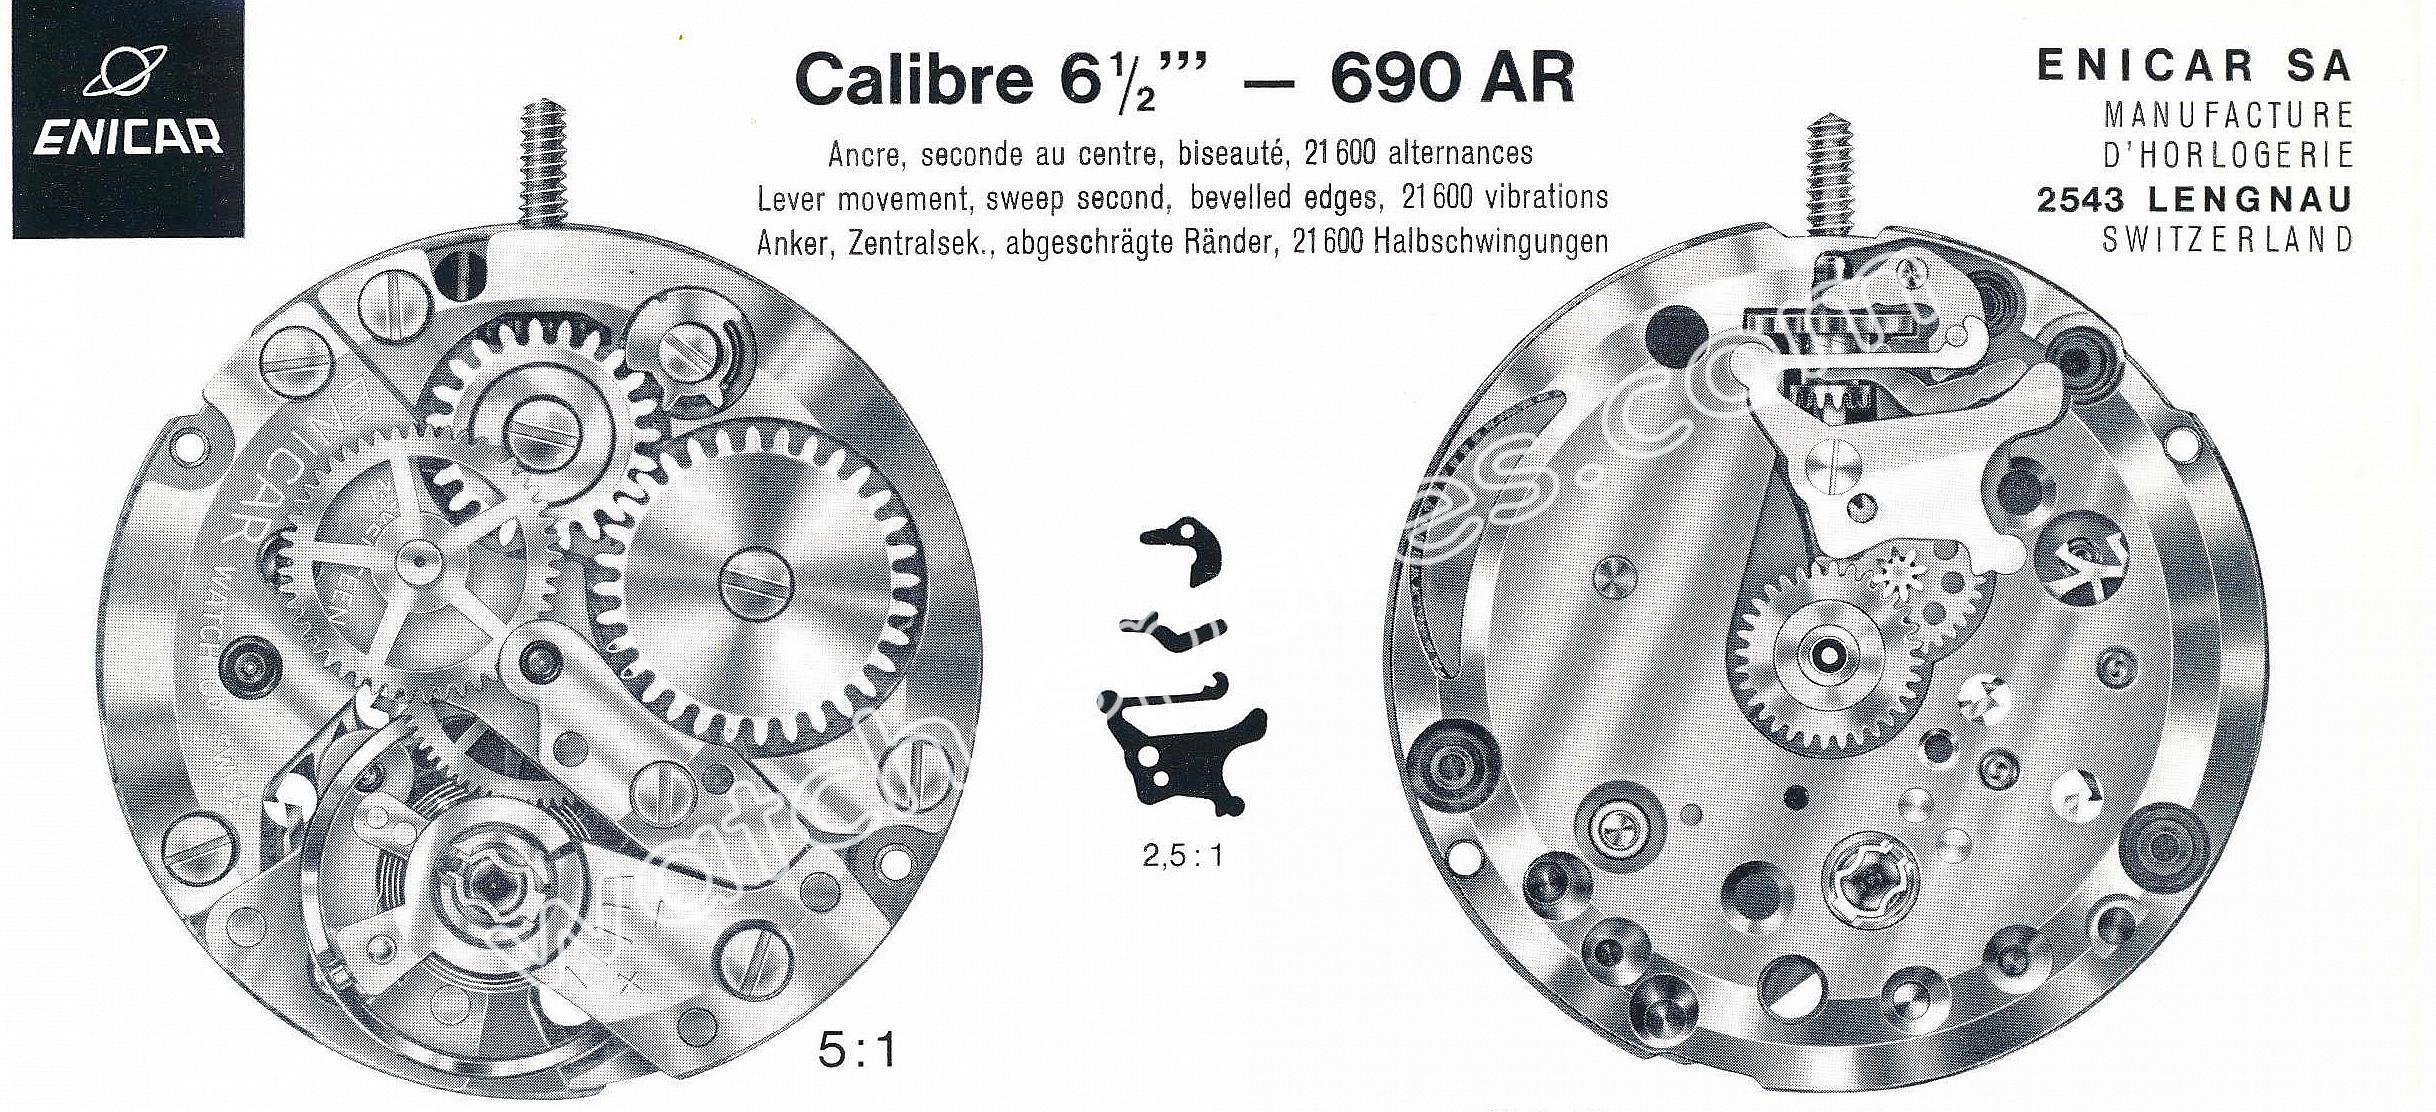 Enicar AR 690 watch movements